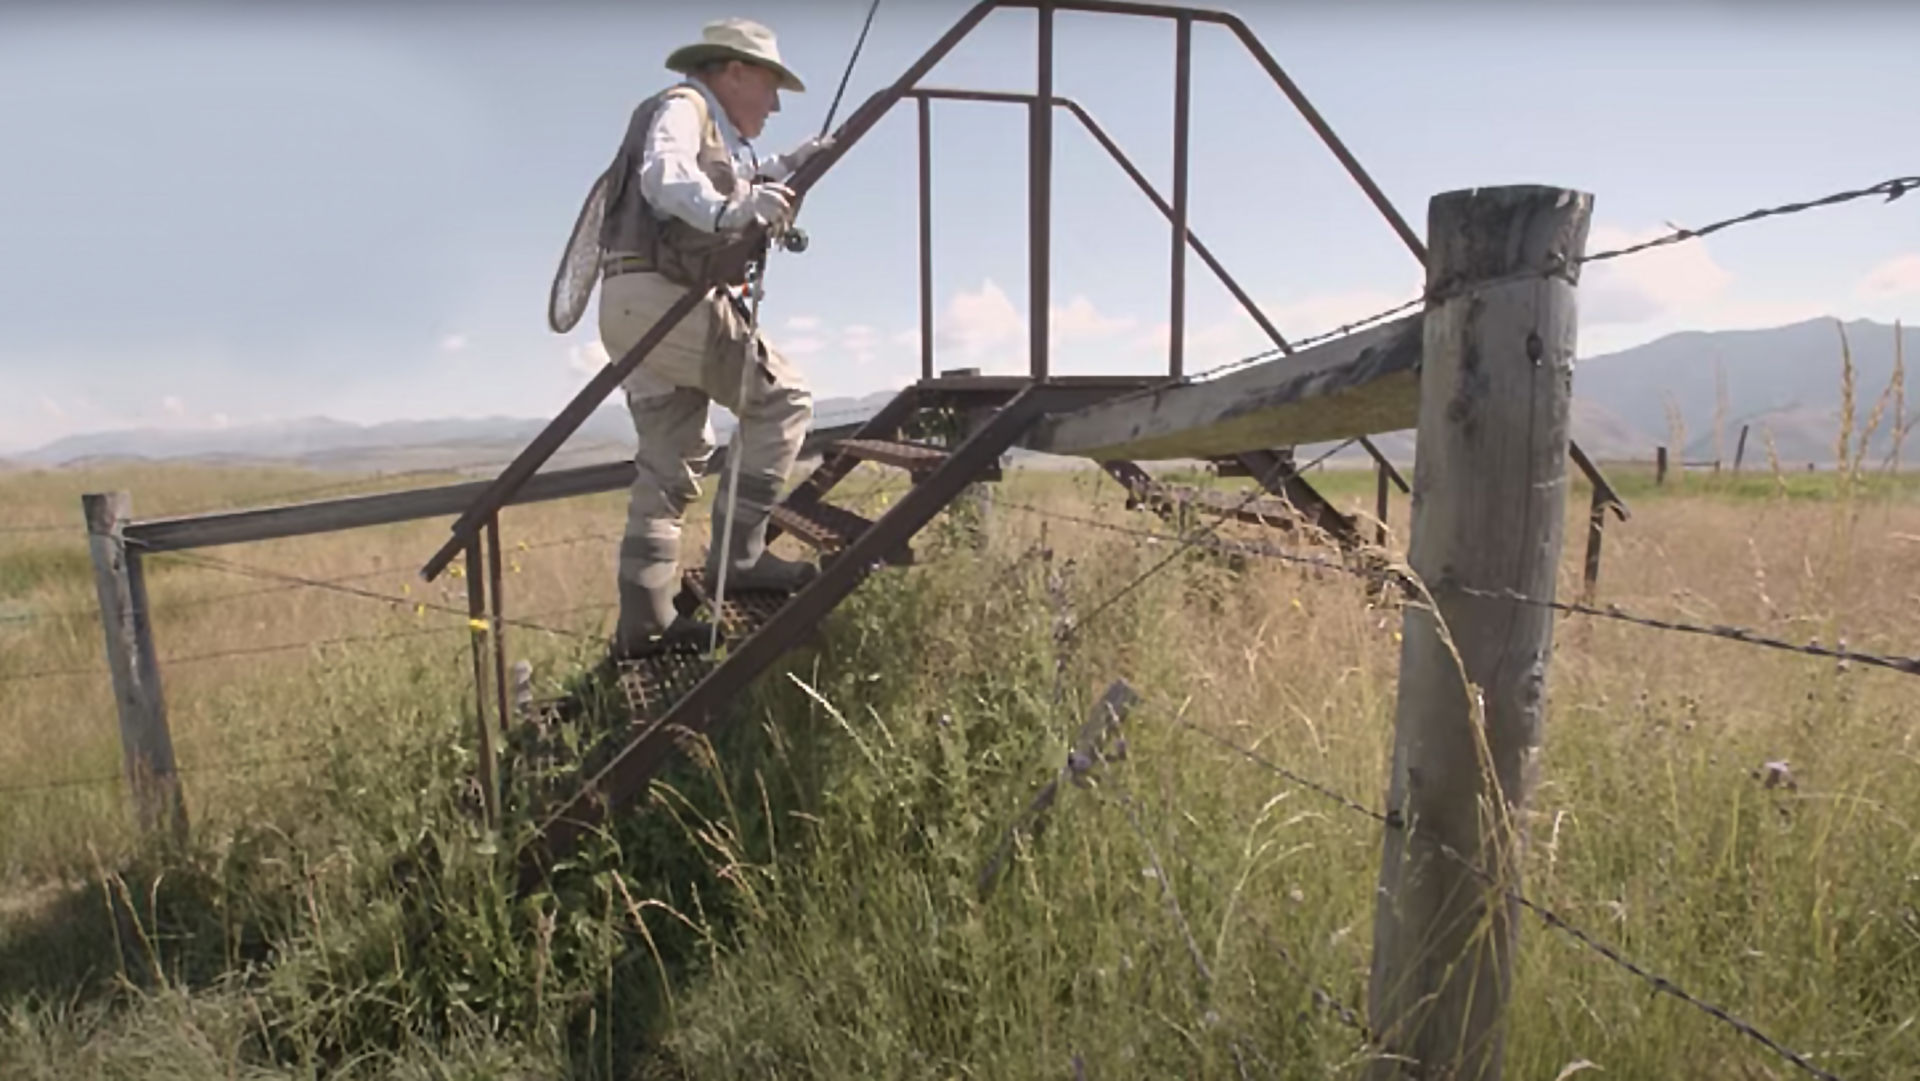 old man in fishing gear using ladder to traverse fence